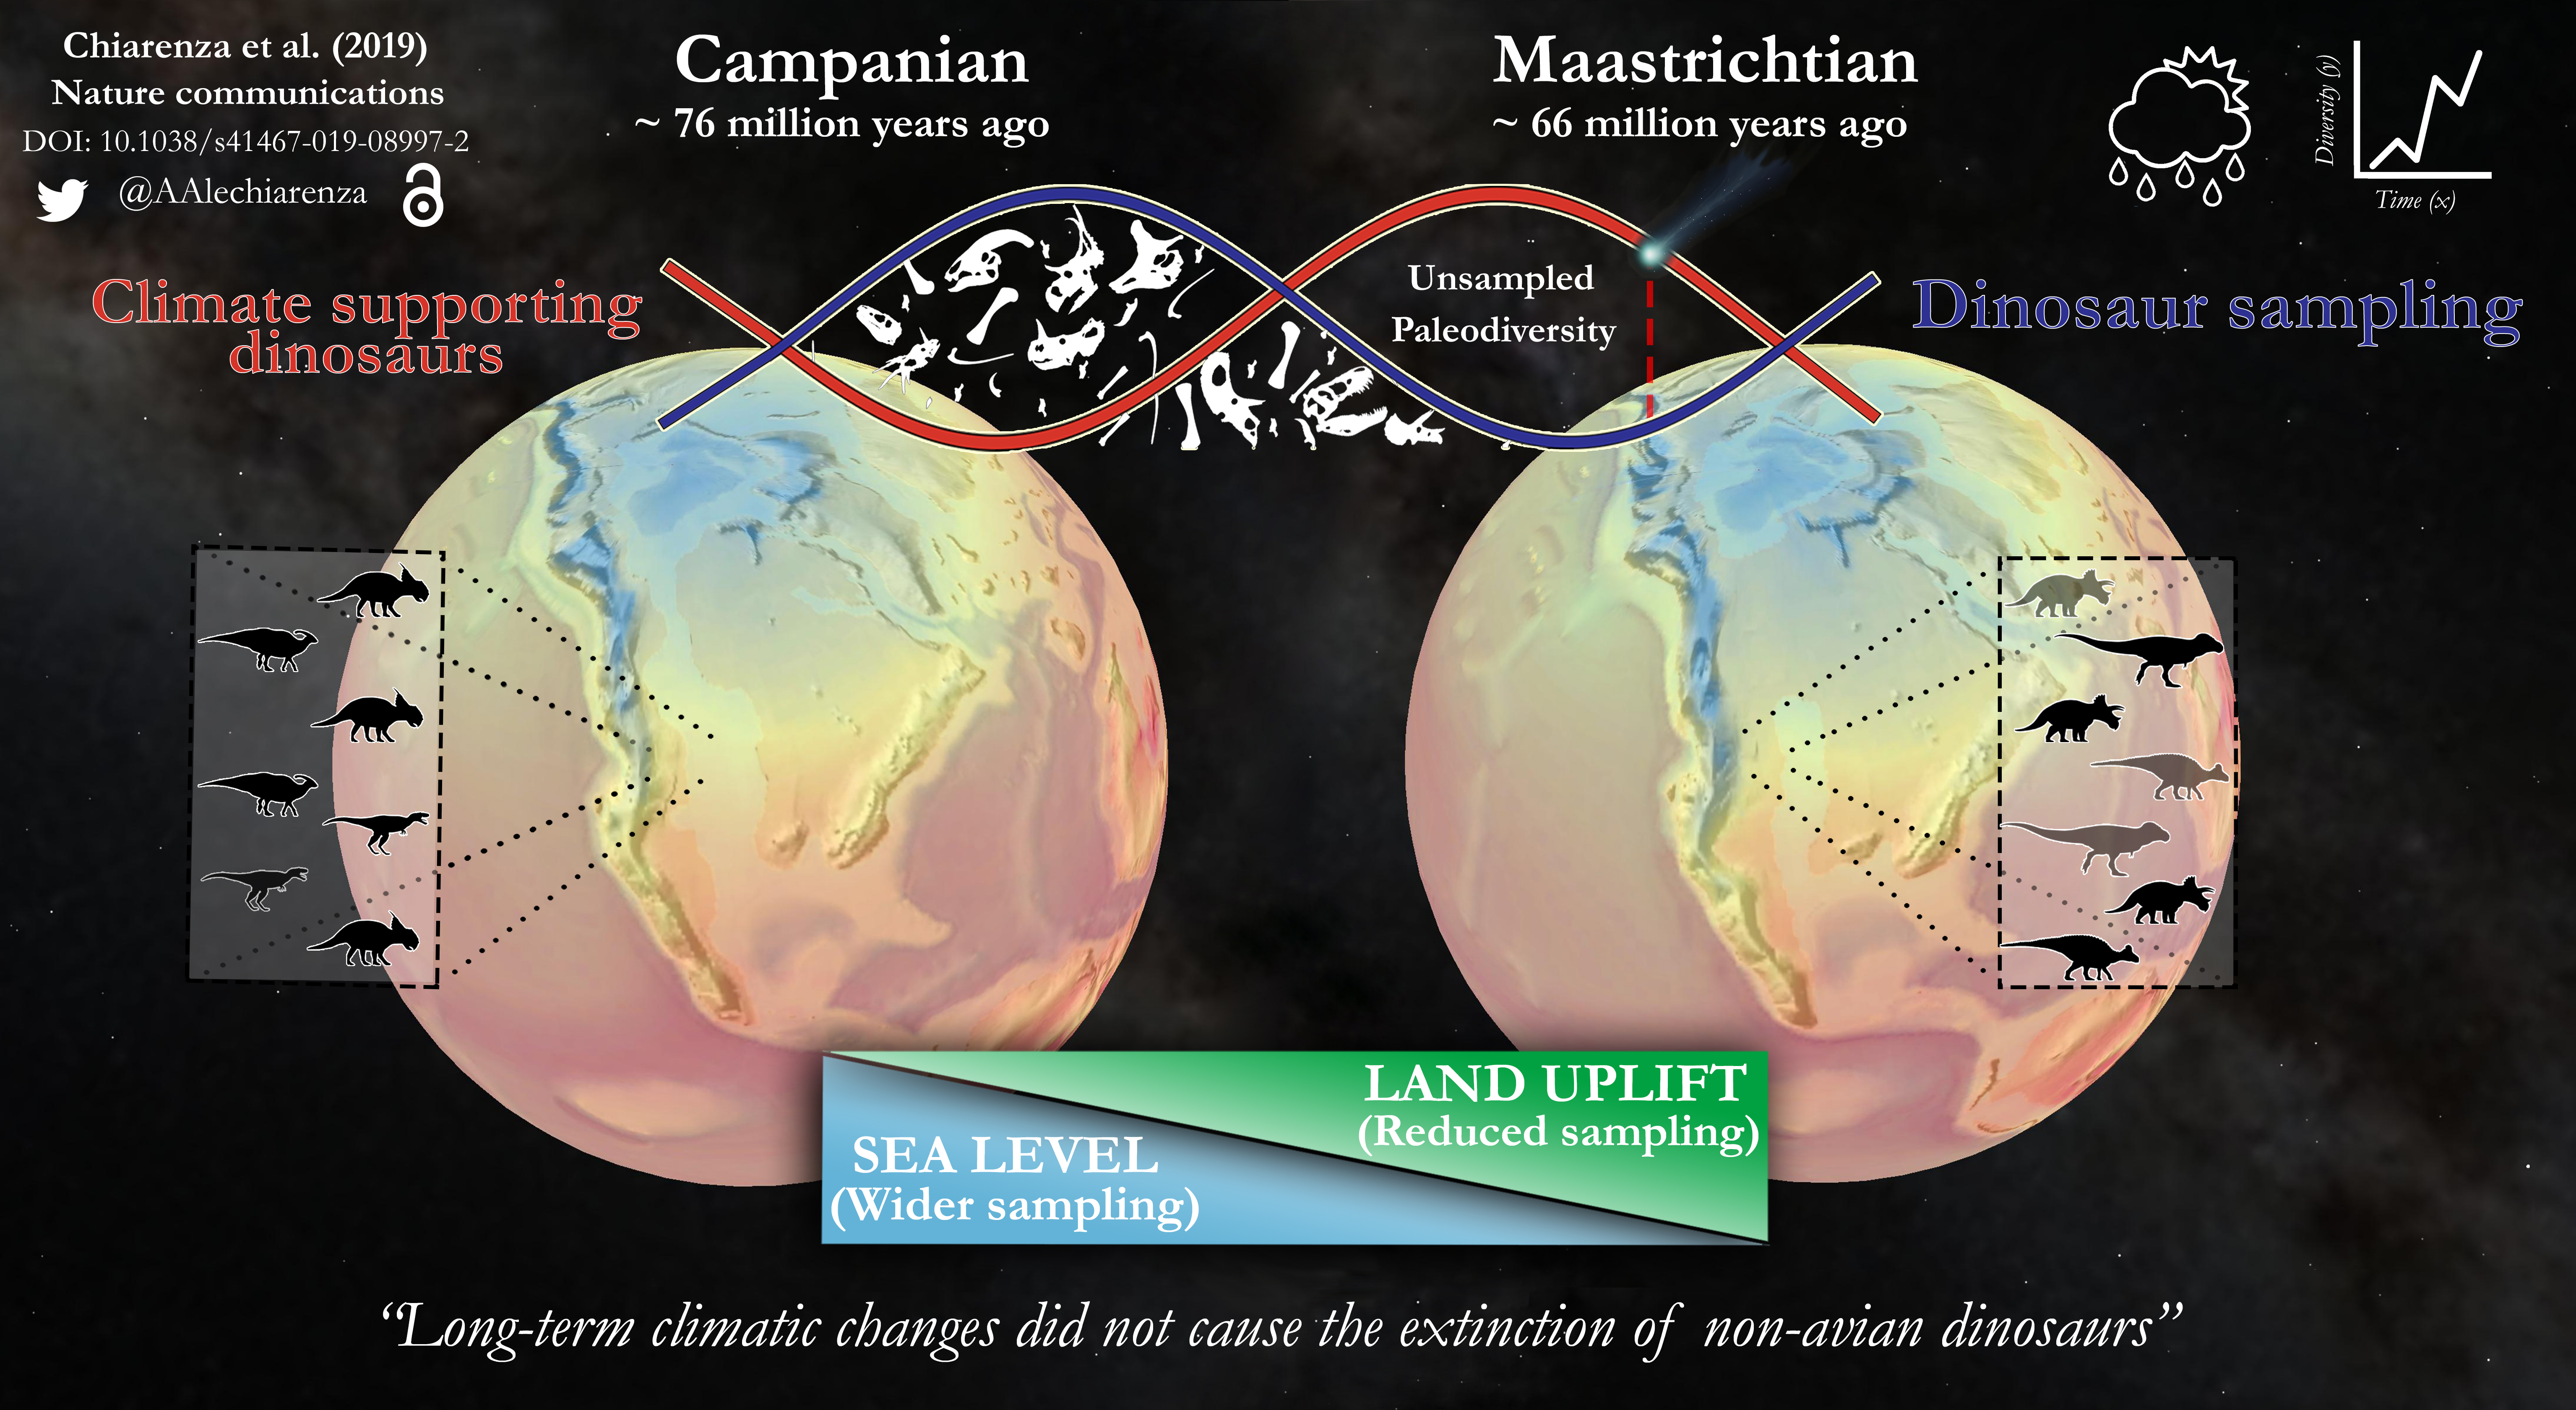 Palaeoclimatic model over Late Crateceous North America